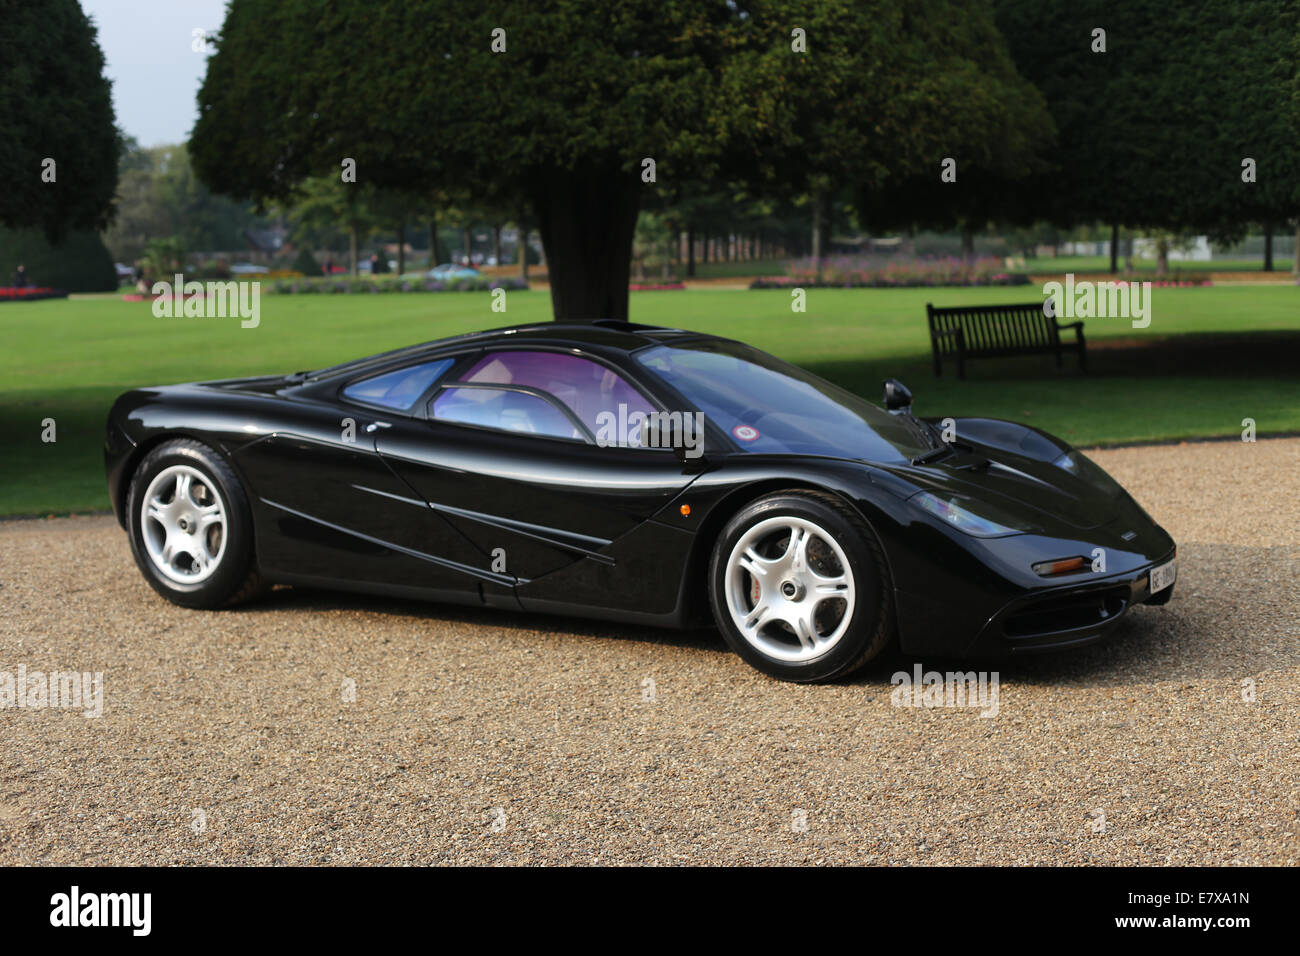 mclaren f1 road car stock photo: 73722705 - alamy